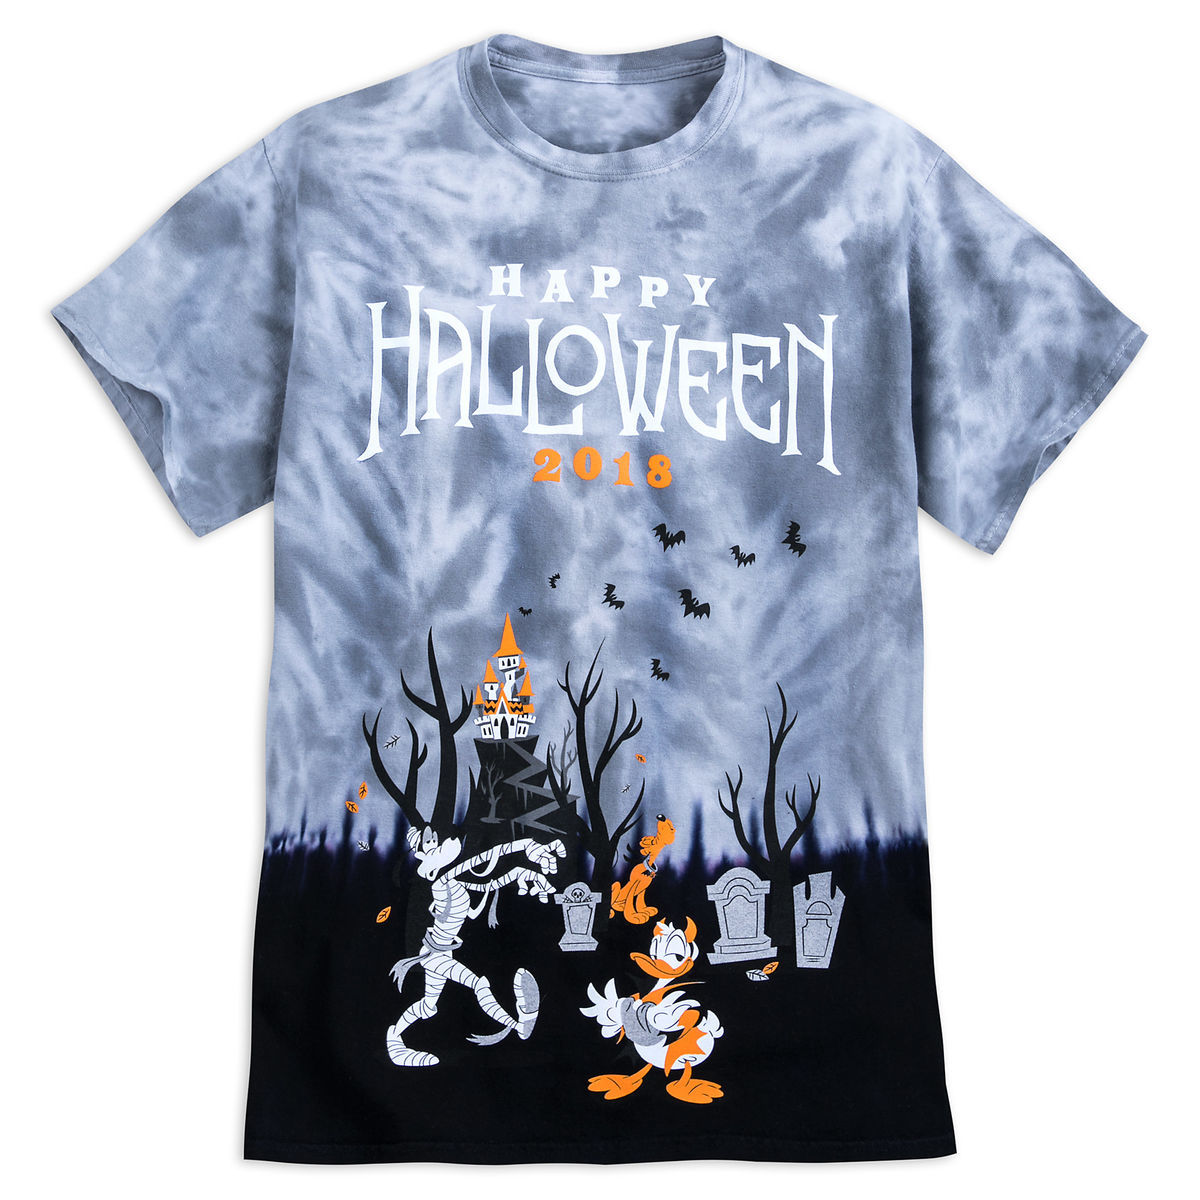 Disney Halloween Shirt Ideas.Disney Halloween T Shirt Ideas Rldm